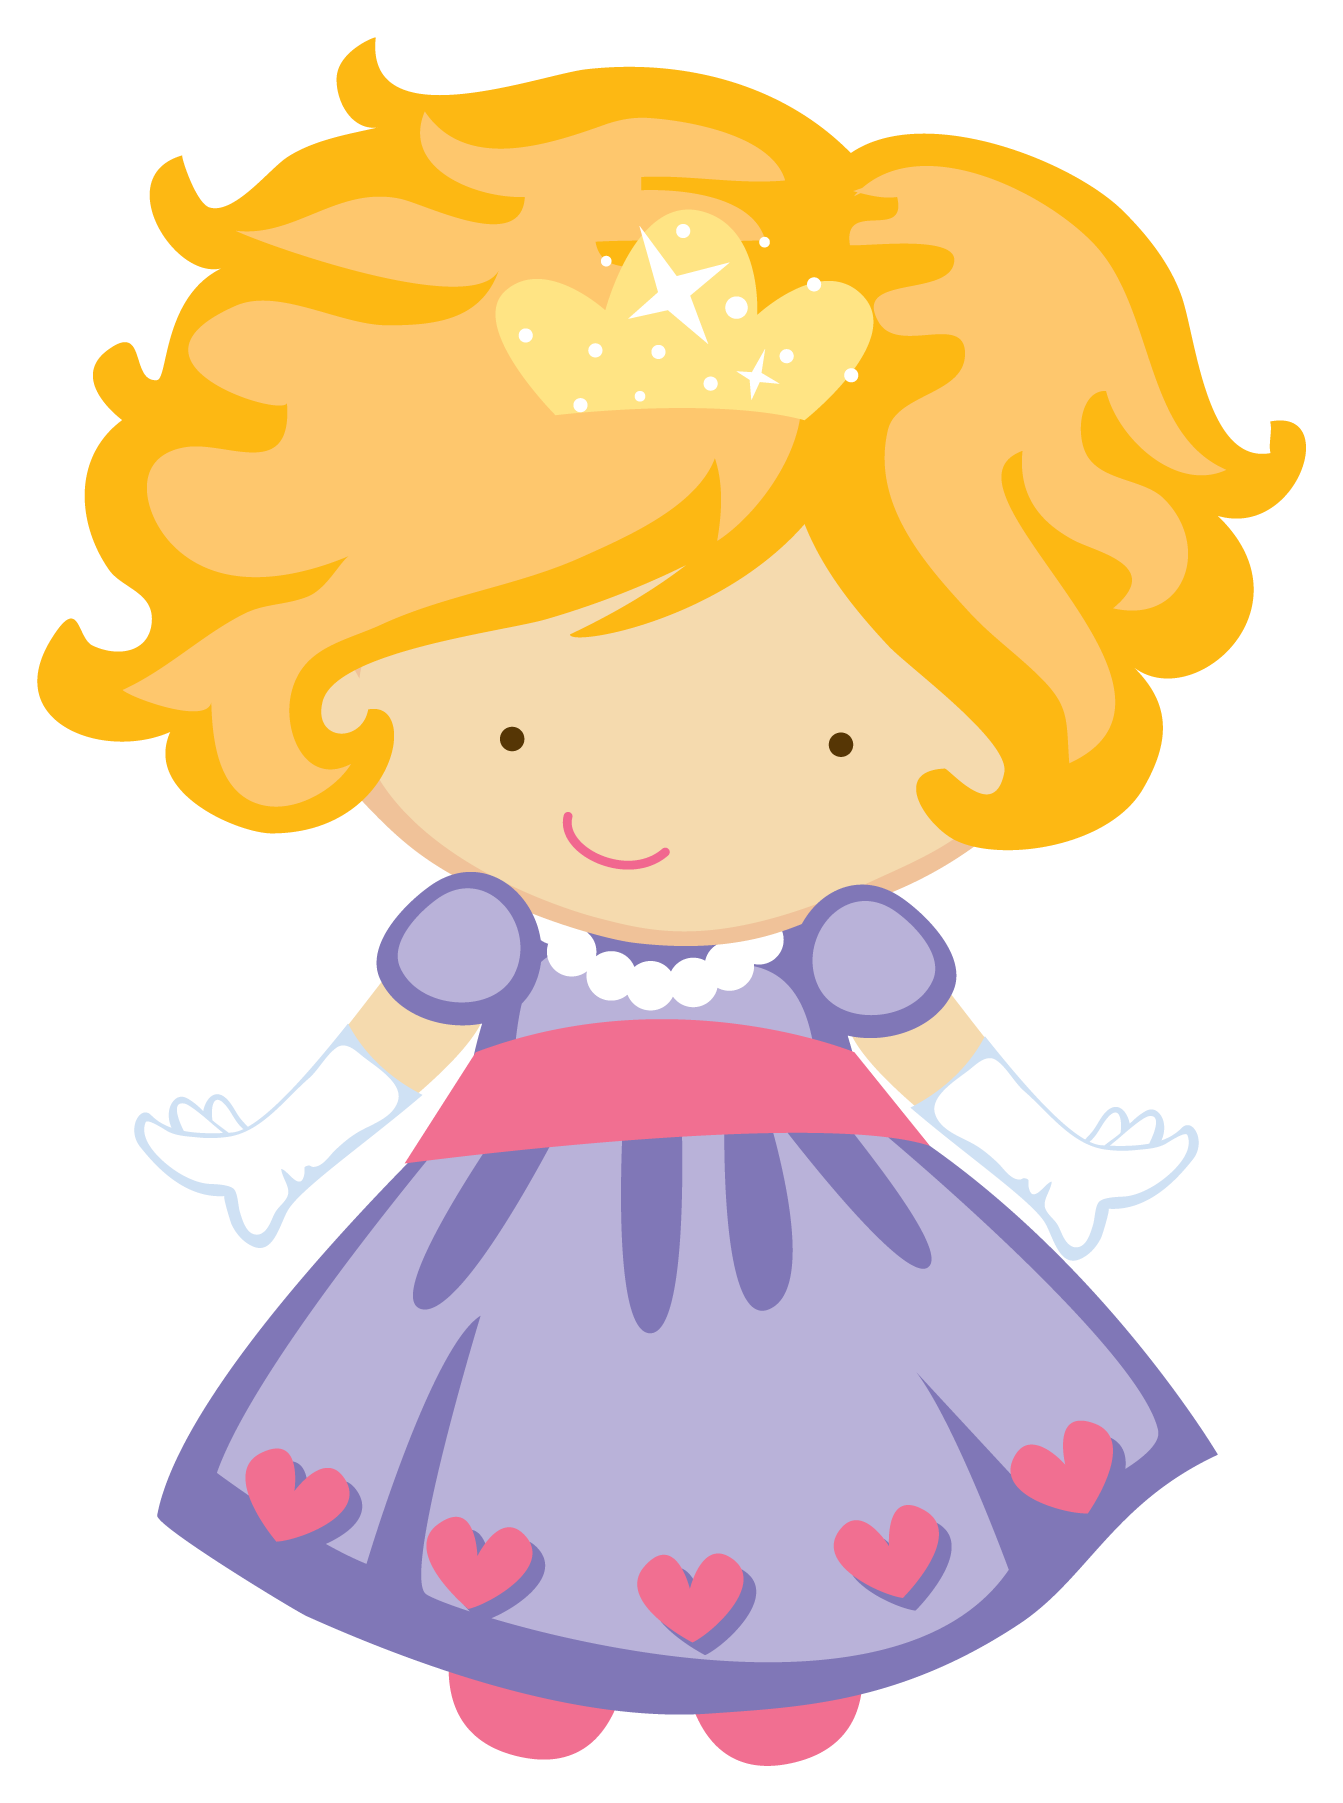 Pajamas clipart flannel. Zwd fairitale princess png